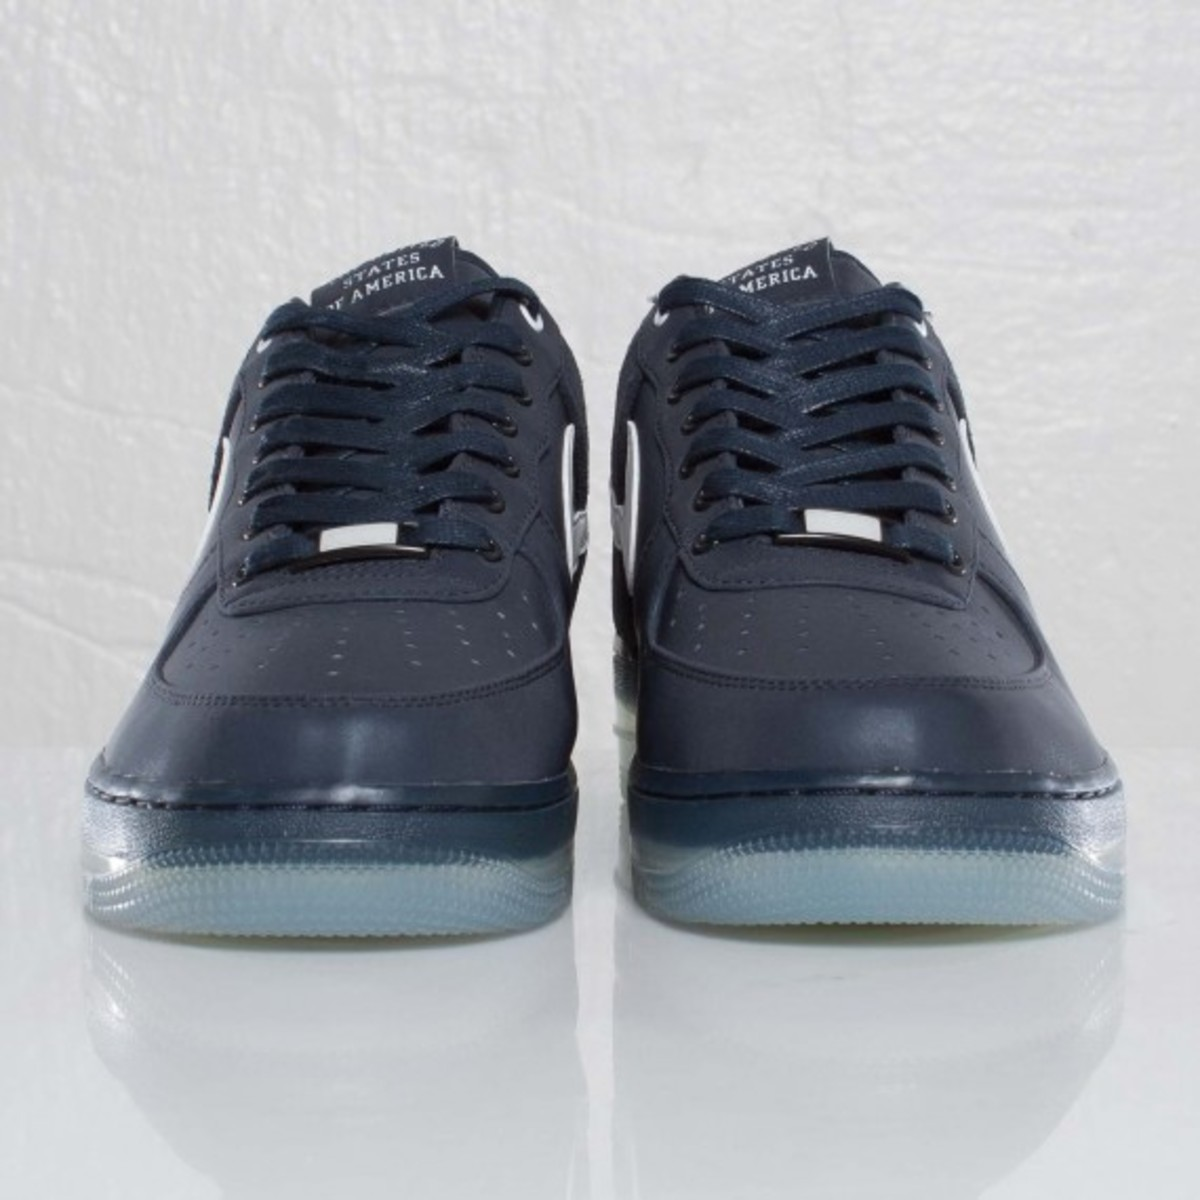 nike-air-force-1-low-medal-stand-pack-2